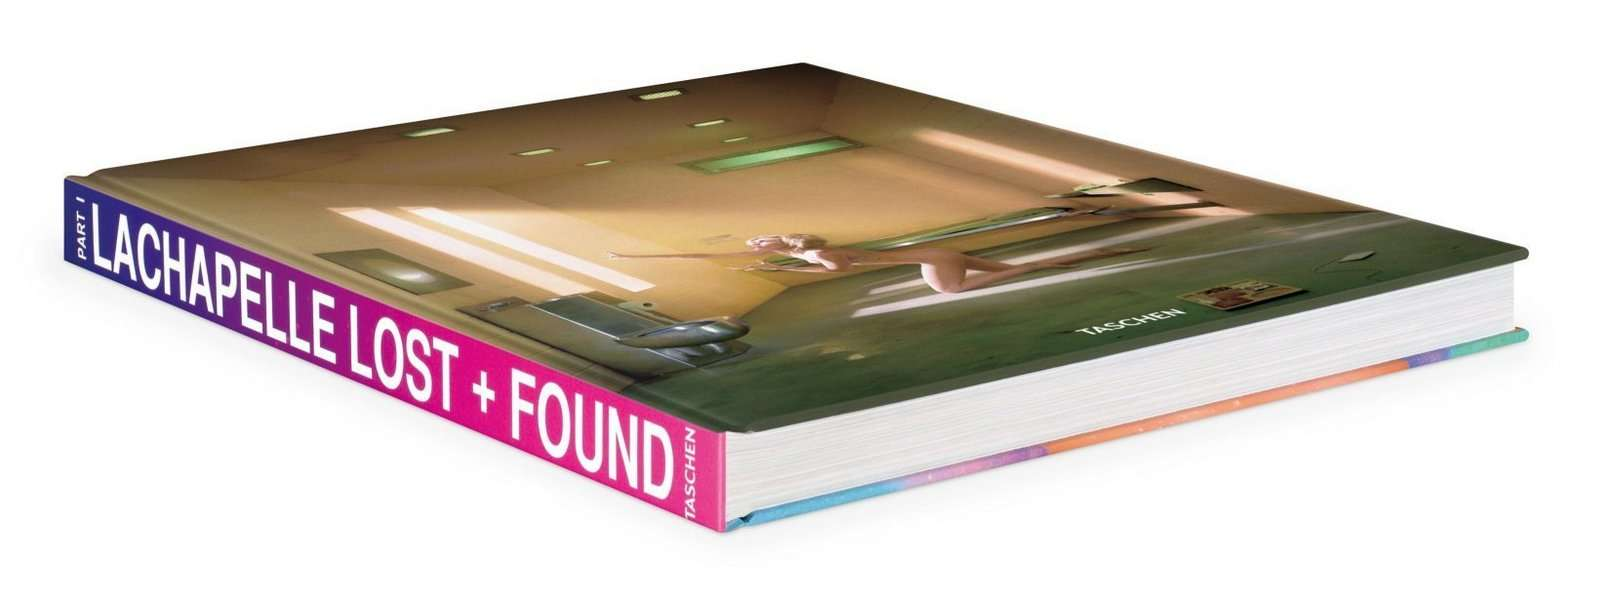 david lachapelle lost found livre